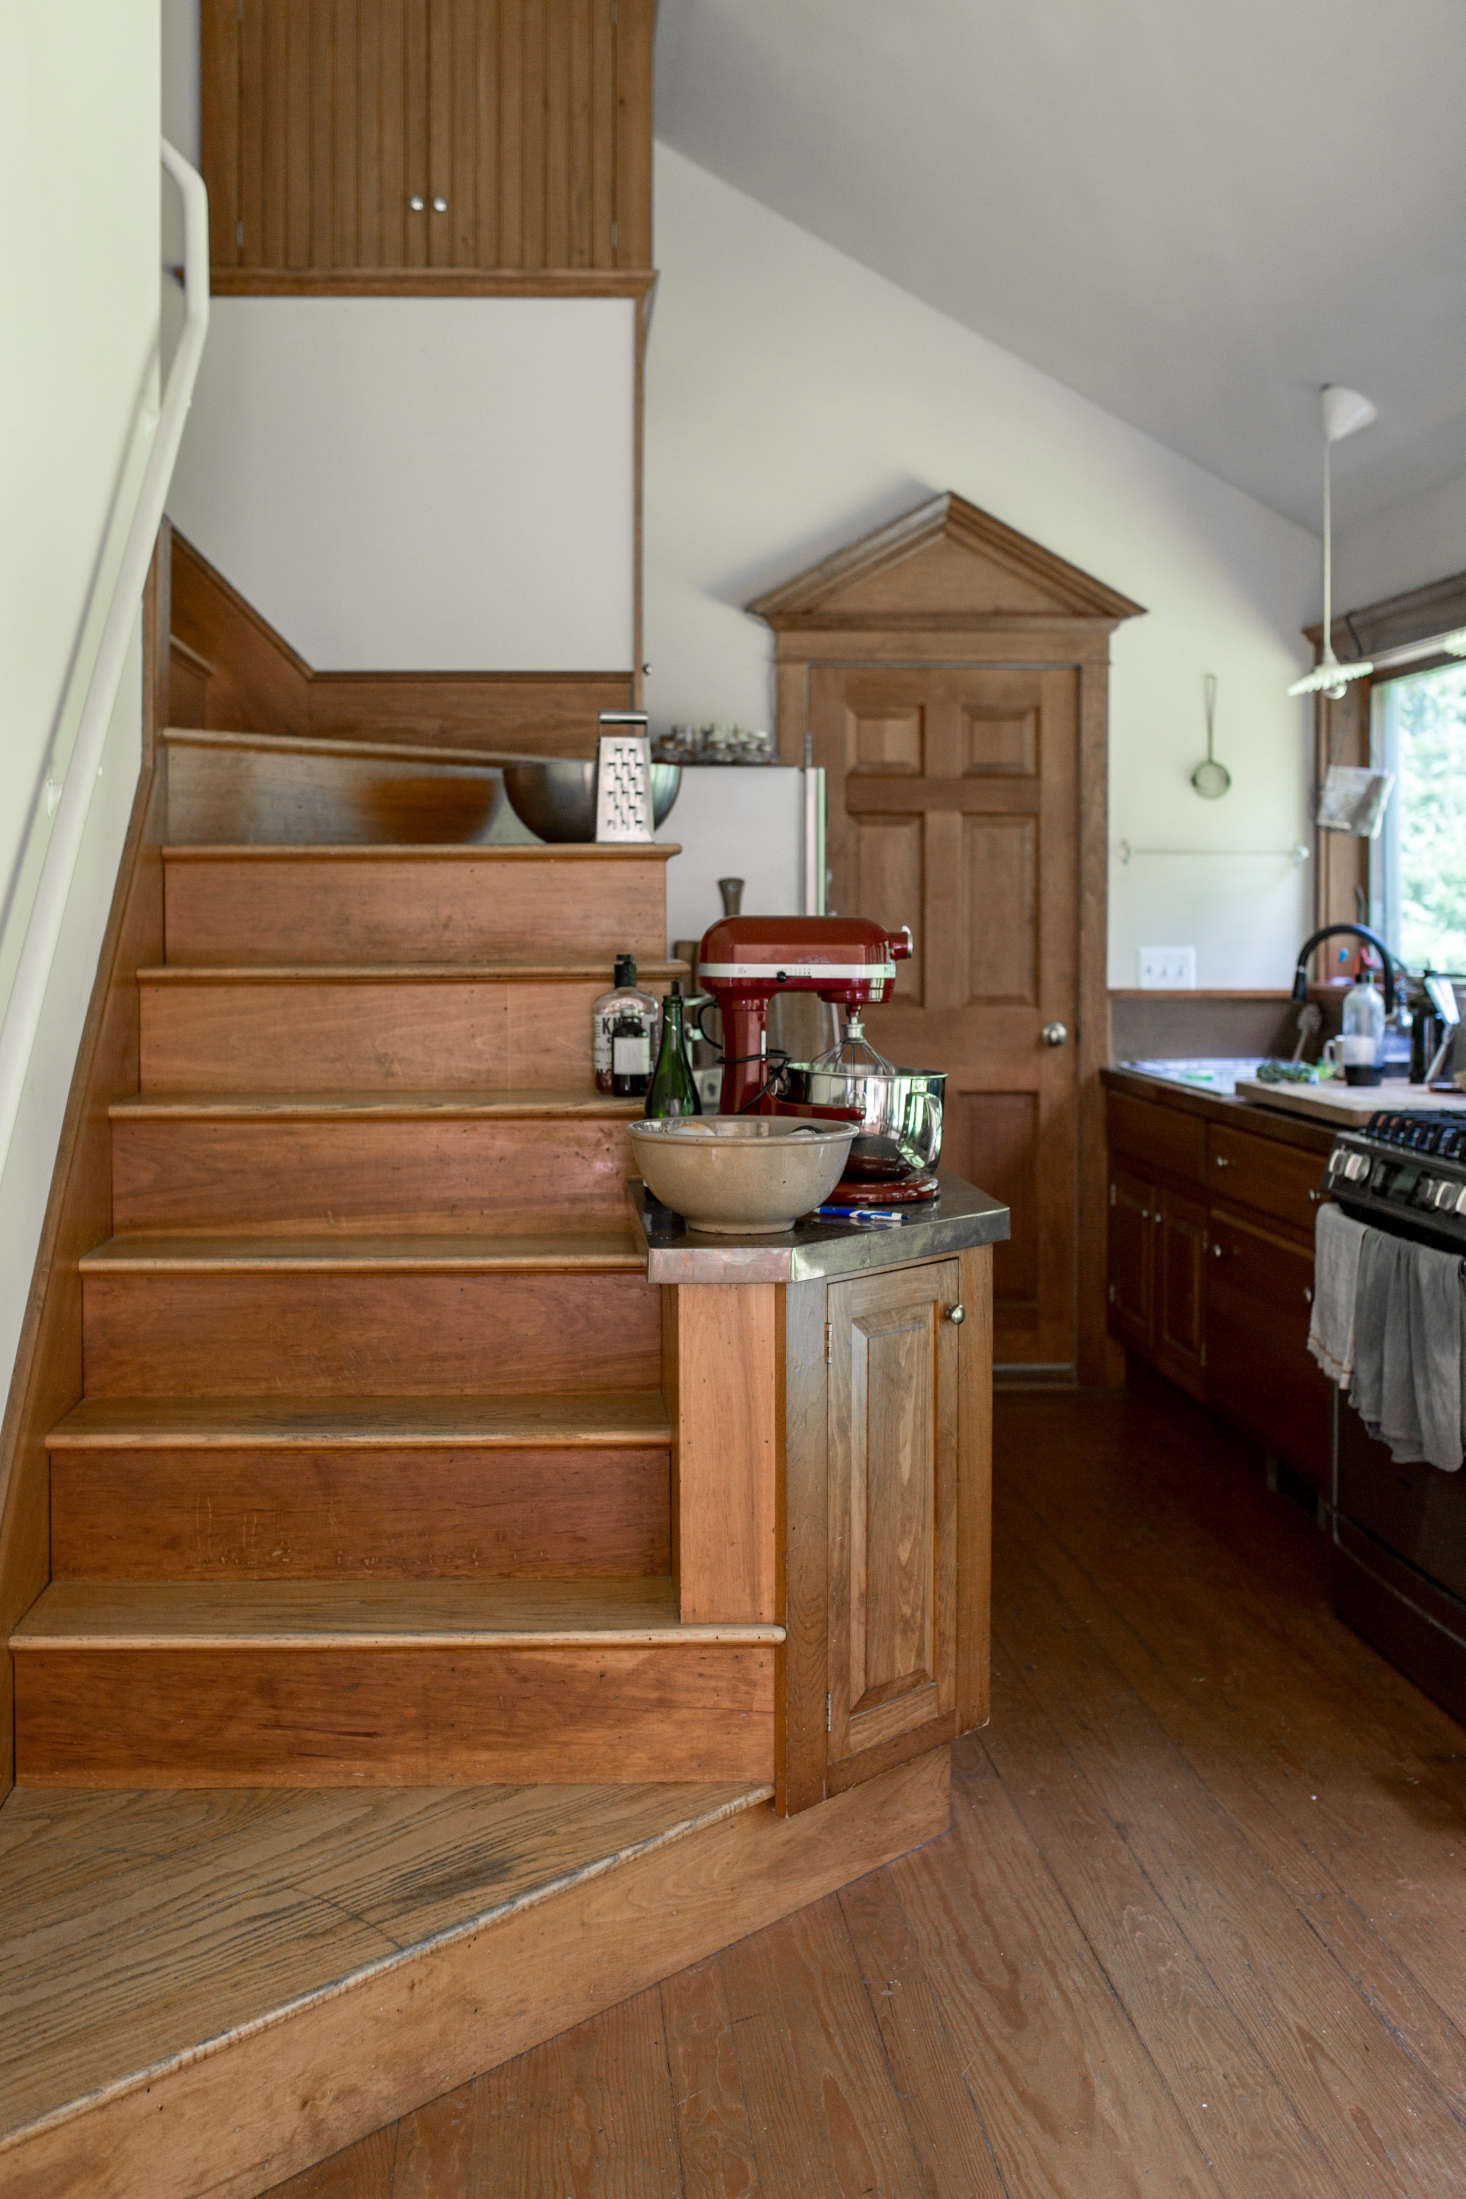 The kitchen is tucked beside the staircase; the couple made only a few small tweaks, including installing copper countertops.